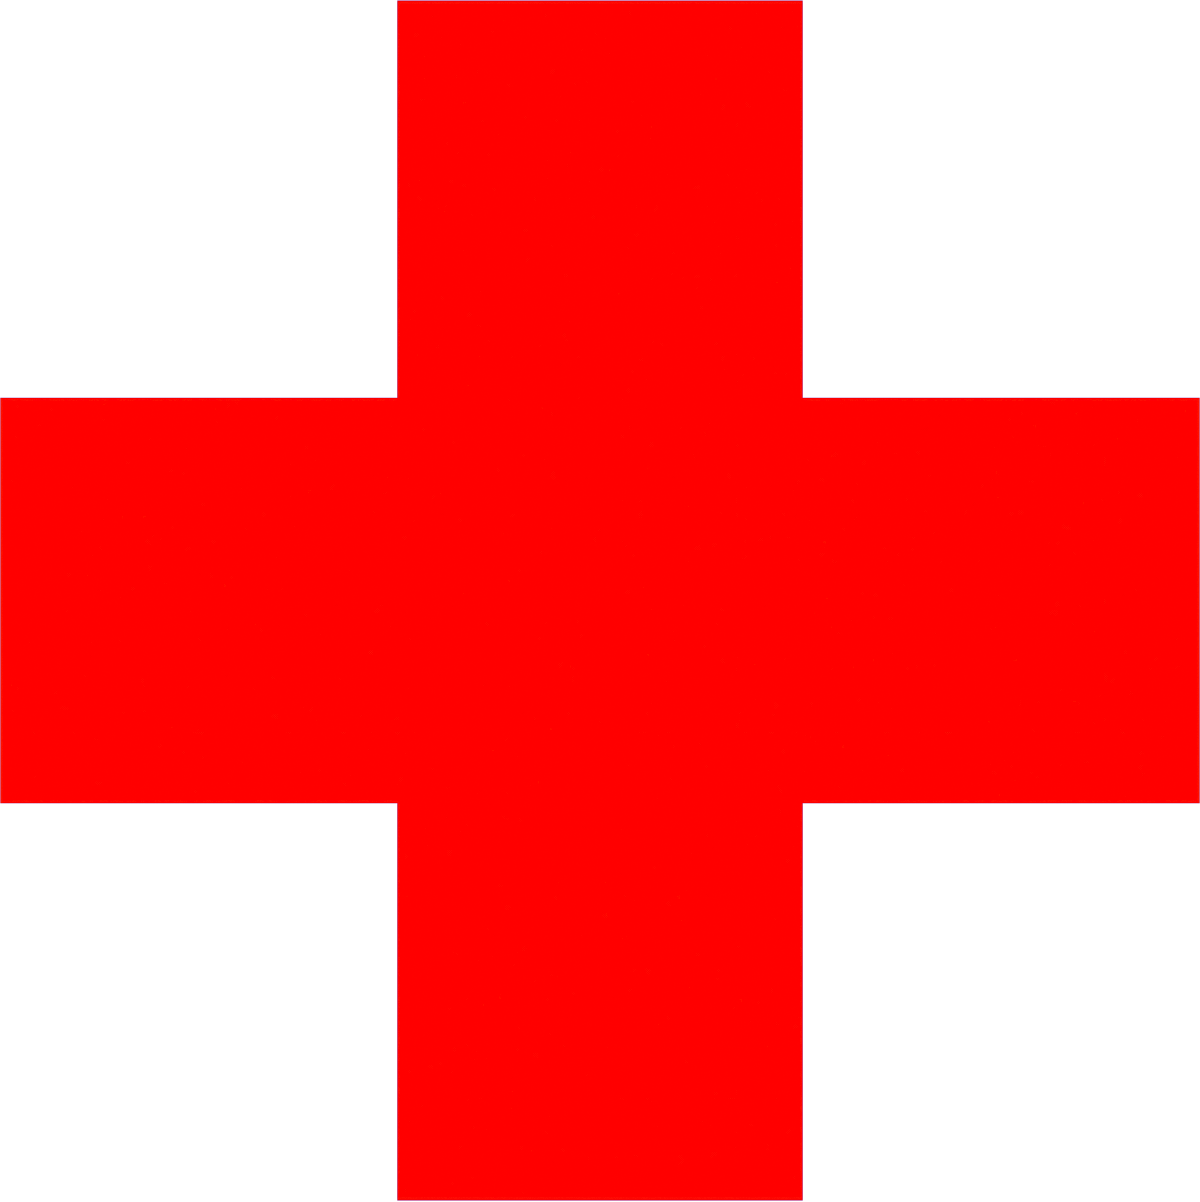 Red Cross PNG HD SVG Clip arts